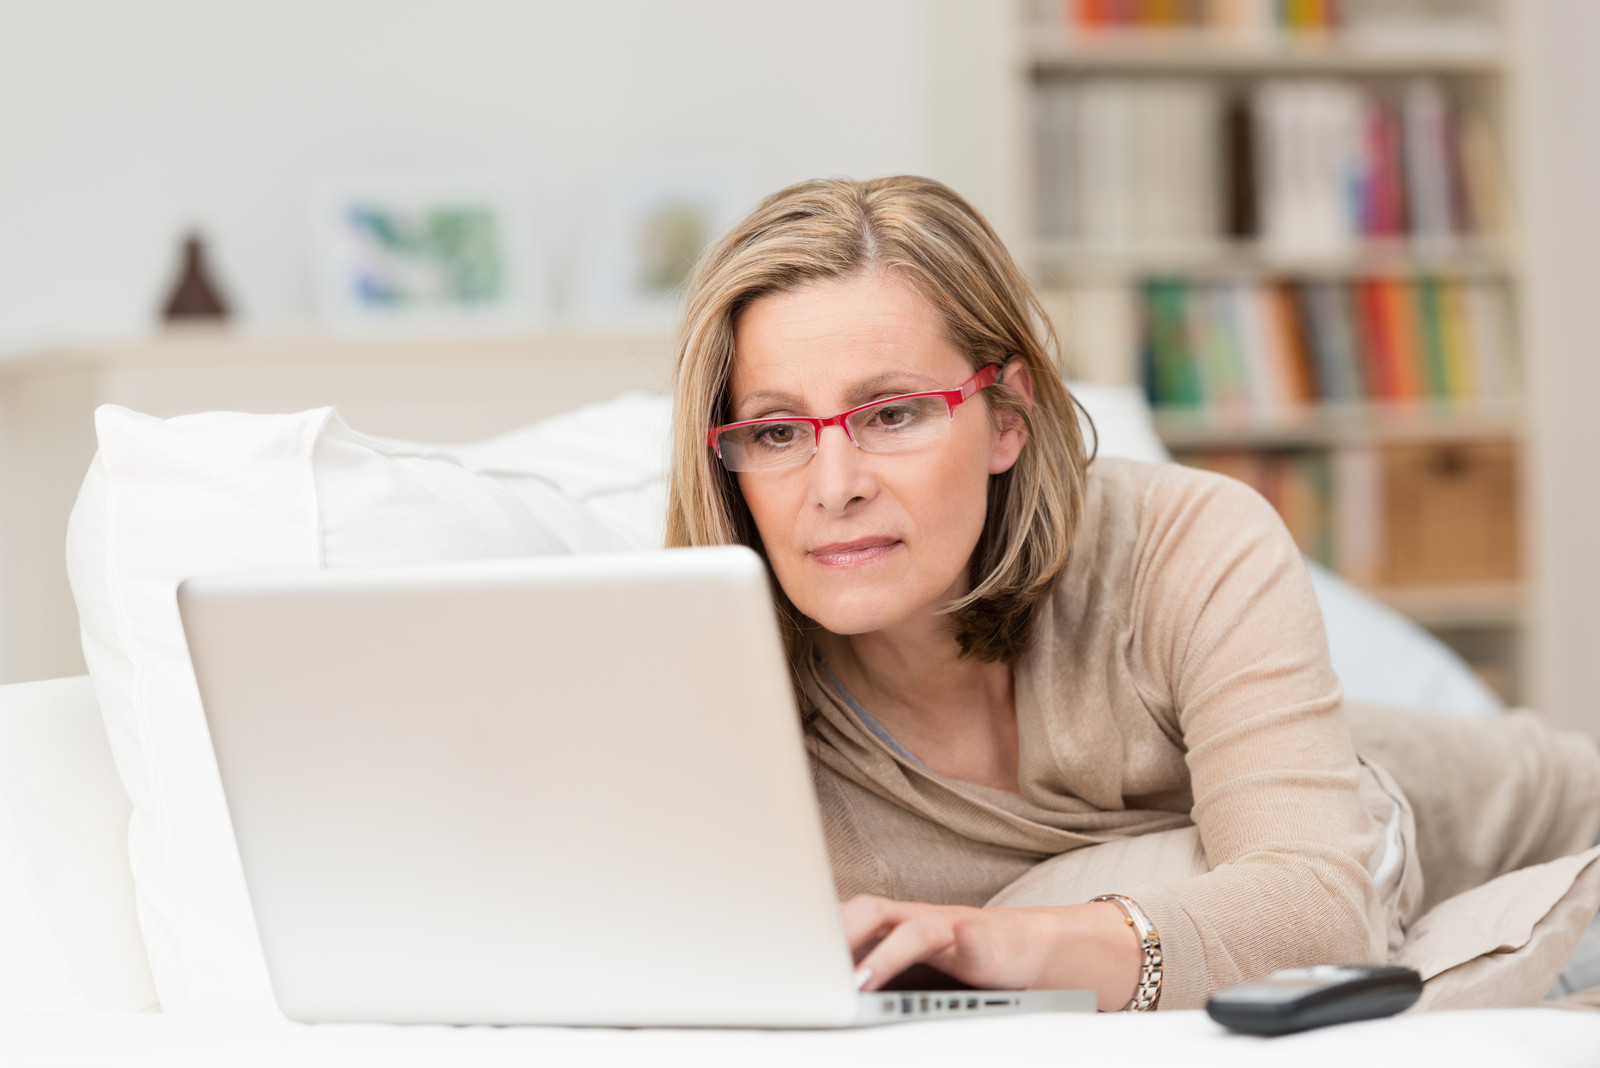 Senior woman wearing reading glasses laying on couch working on her laptop